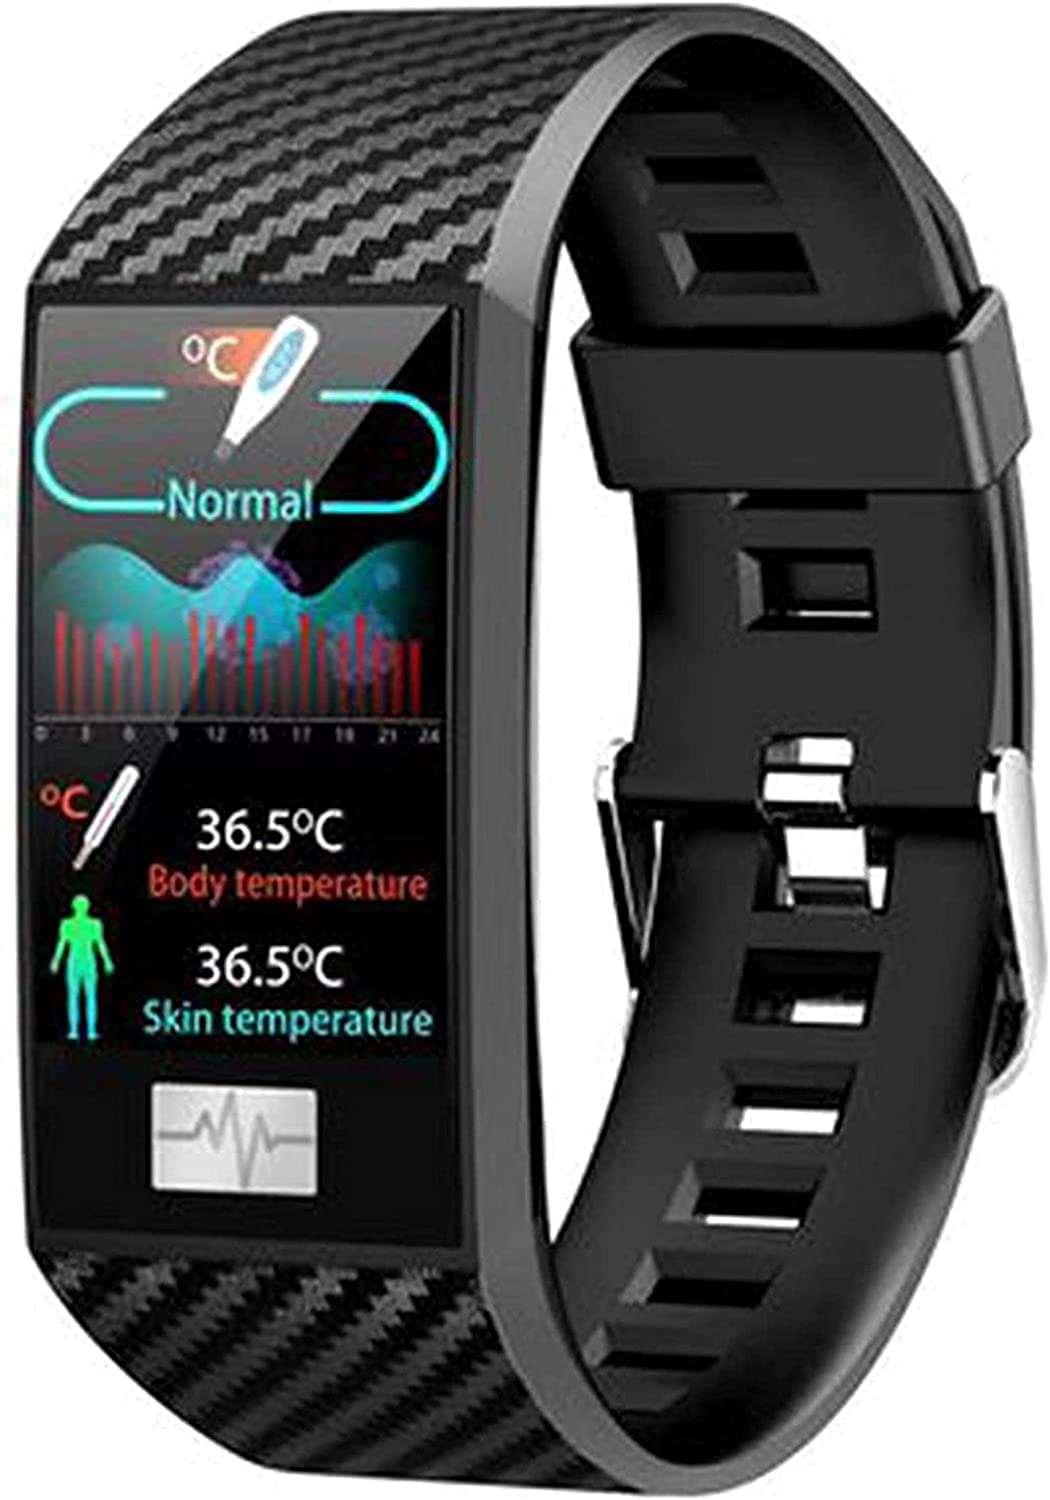 MXCHEN Max 71% OFF Bluetooth Smart Bracelet Watch Monito Heart DT58 Pro Rate Max 72% OFF